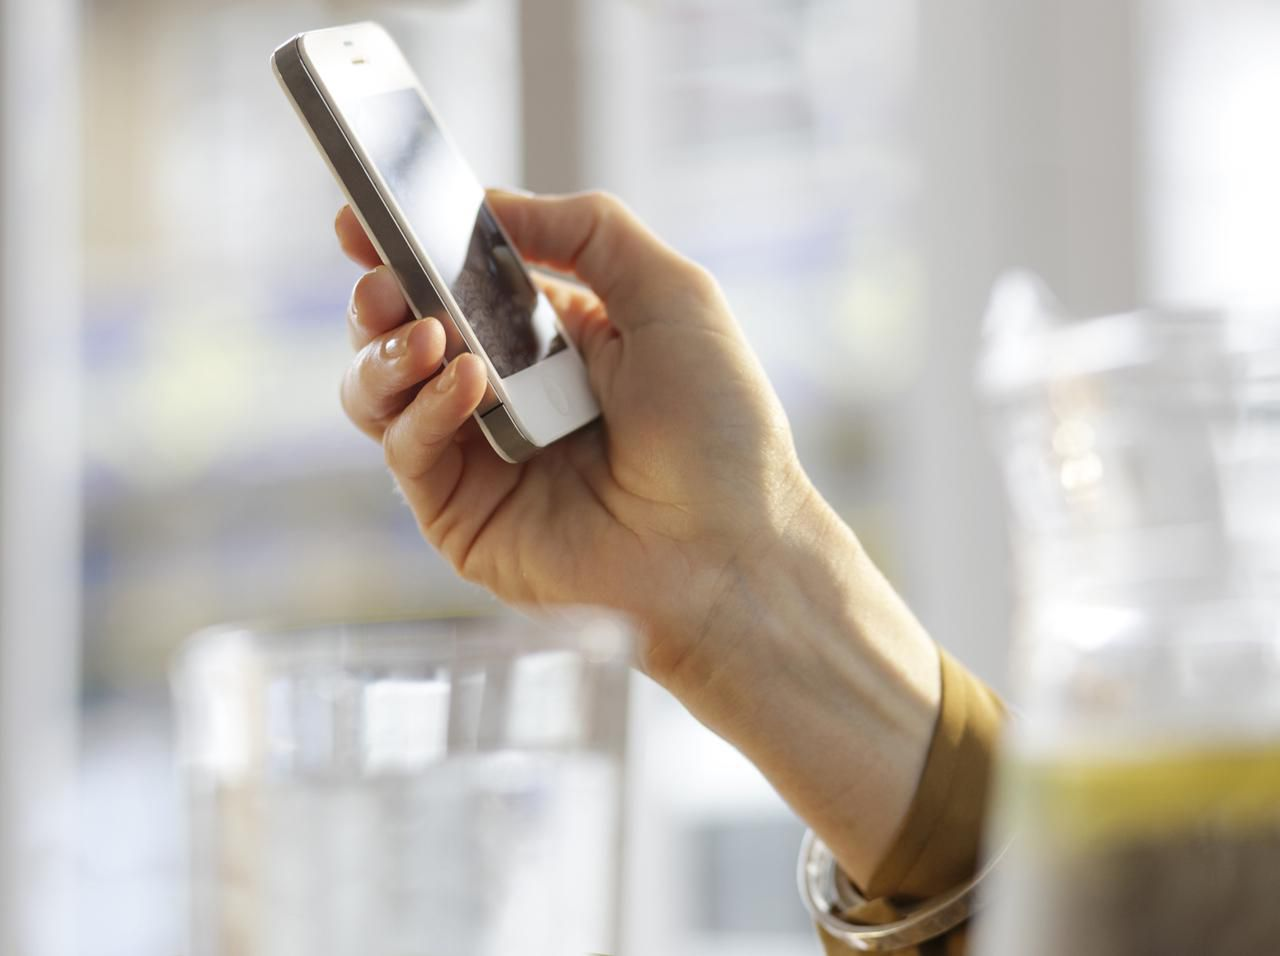 5 Ways to Get Into the Mobile Phone Business without Selling Phones